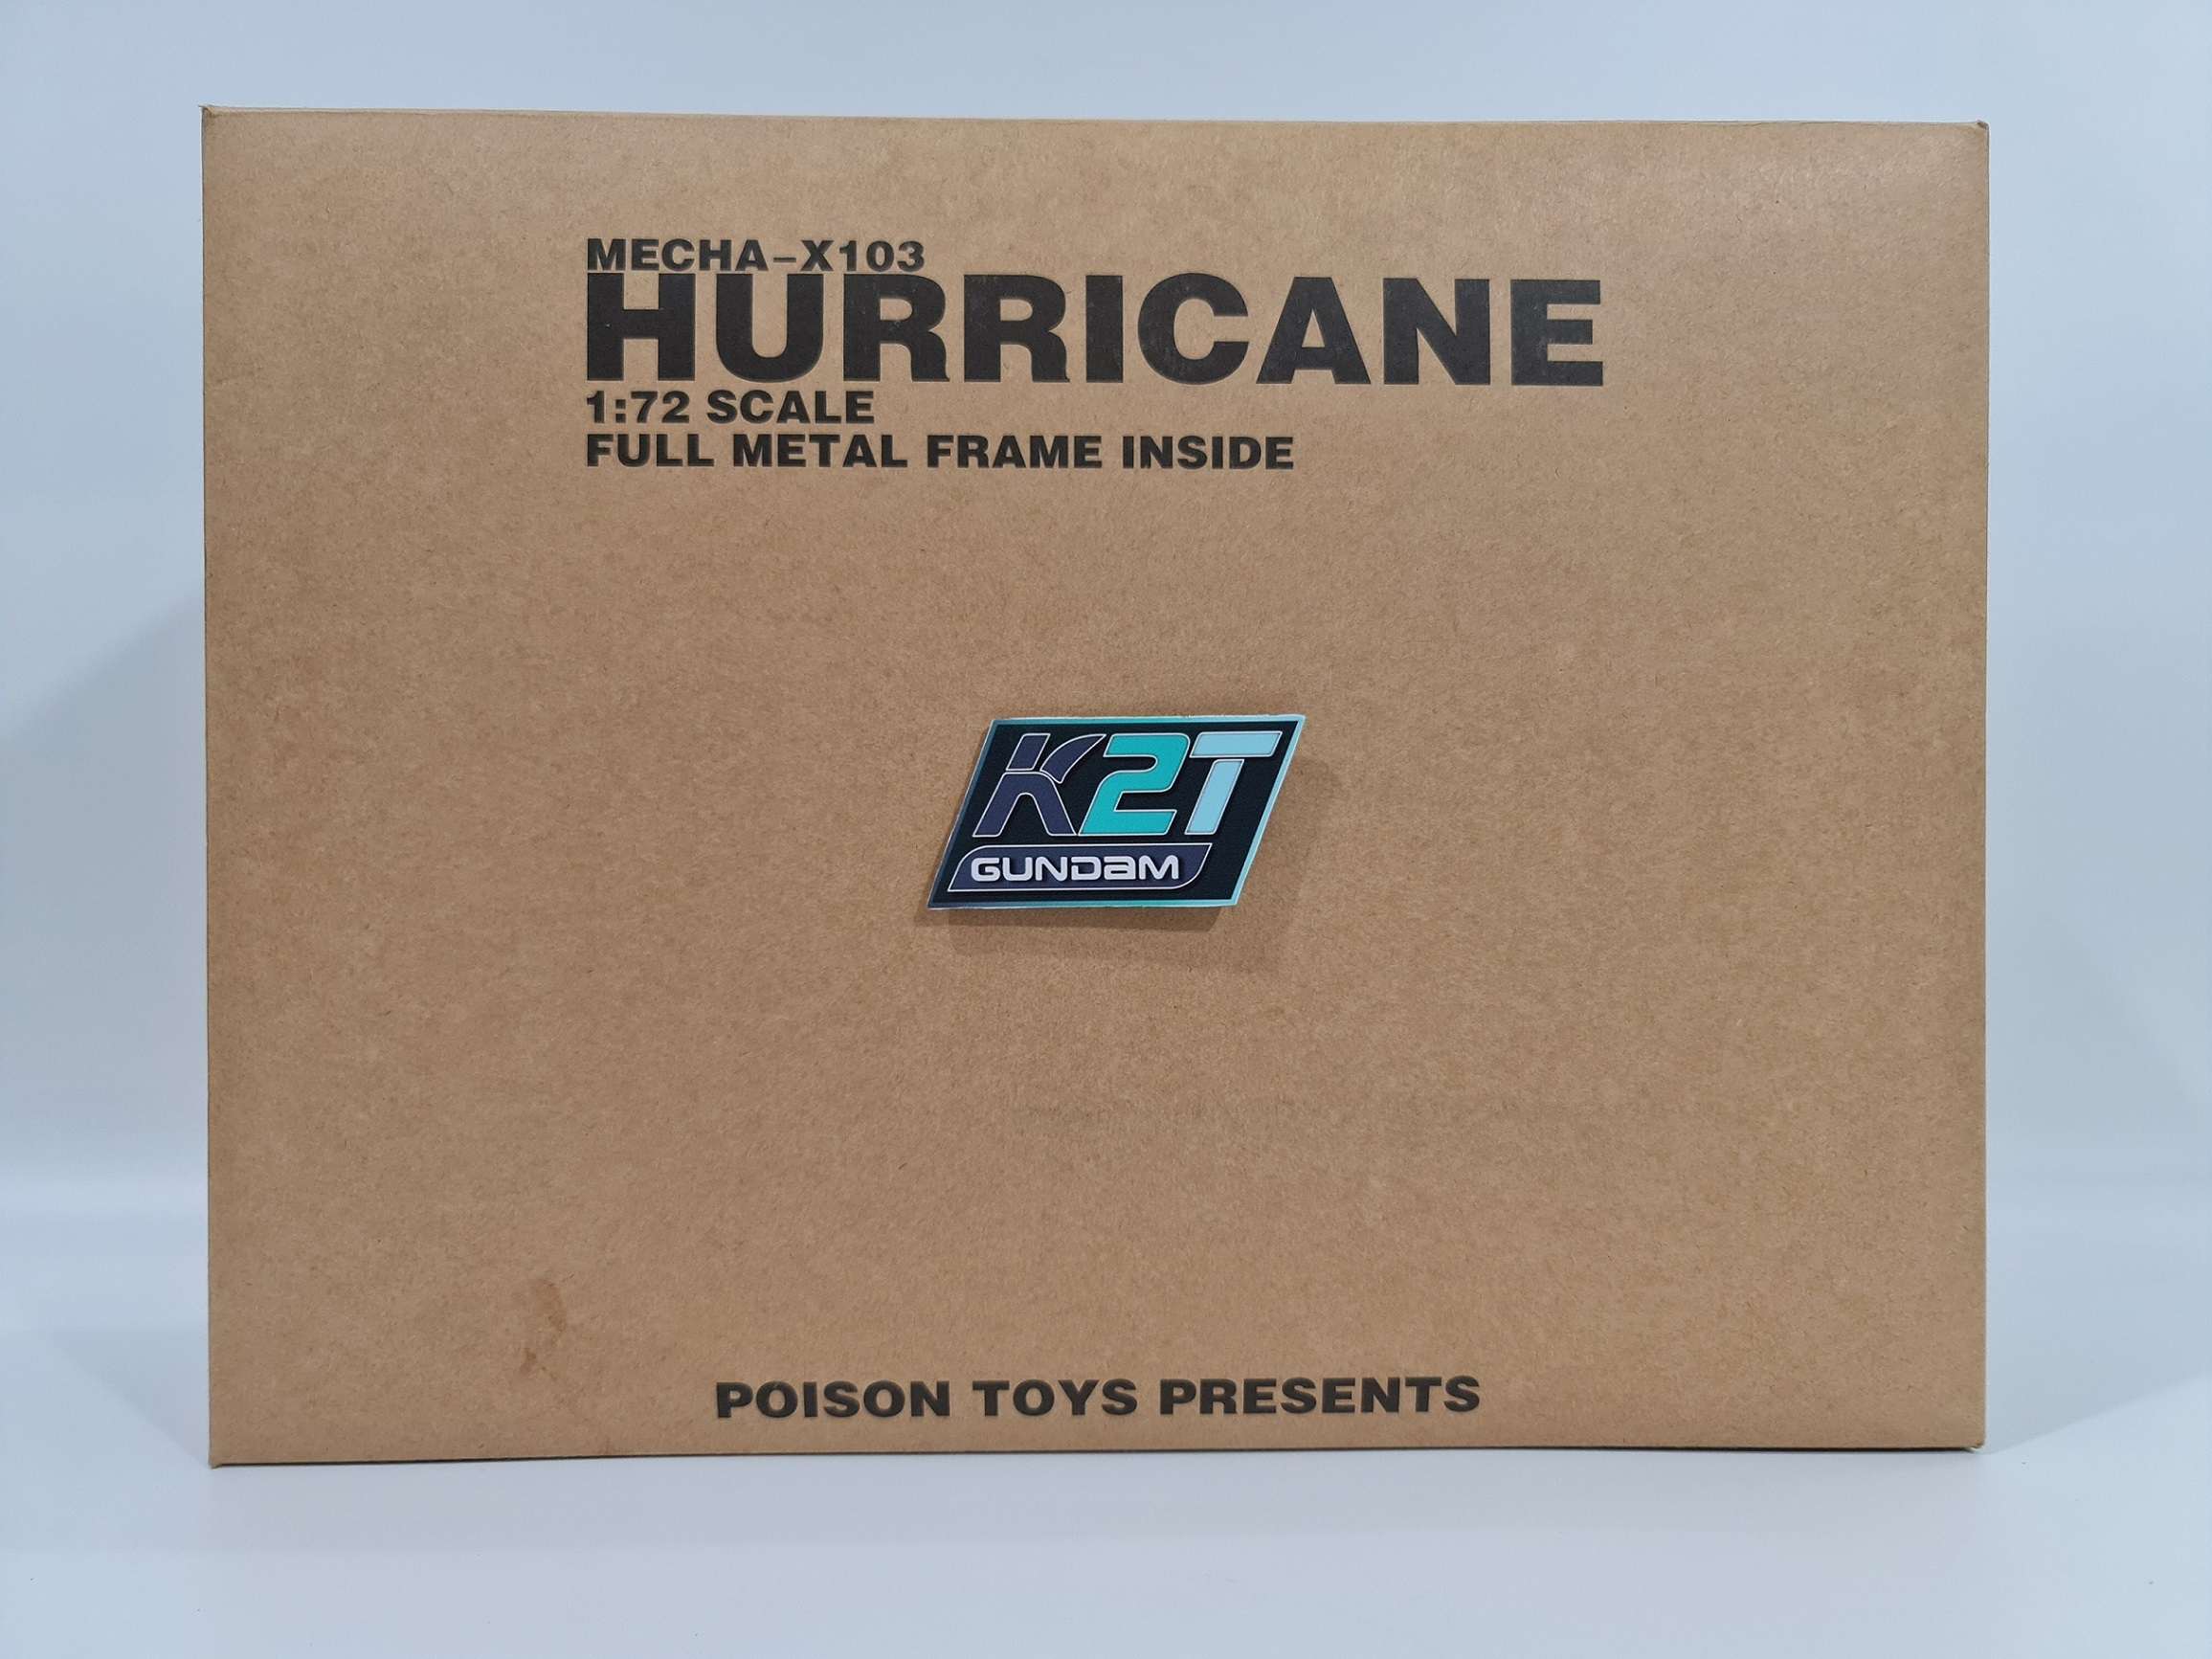 mo-hinh-metal-build-1-72-poisontoys-moshow-hurricane-hang-2nd-vui-long-doc-ky-mo